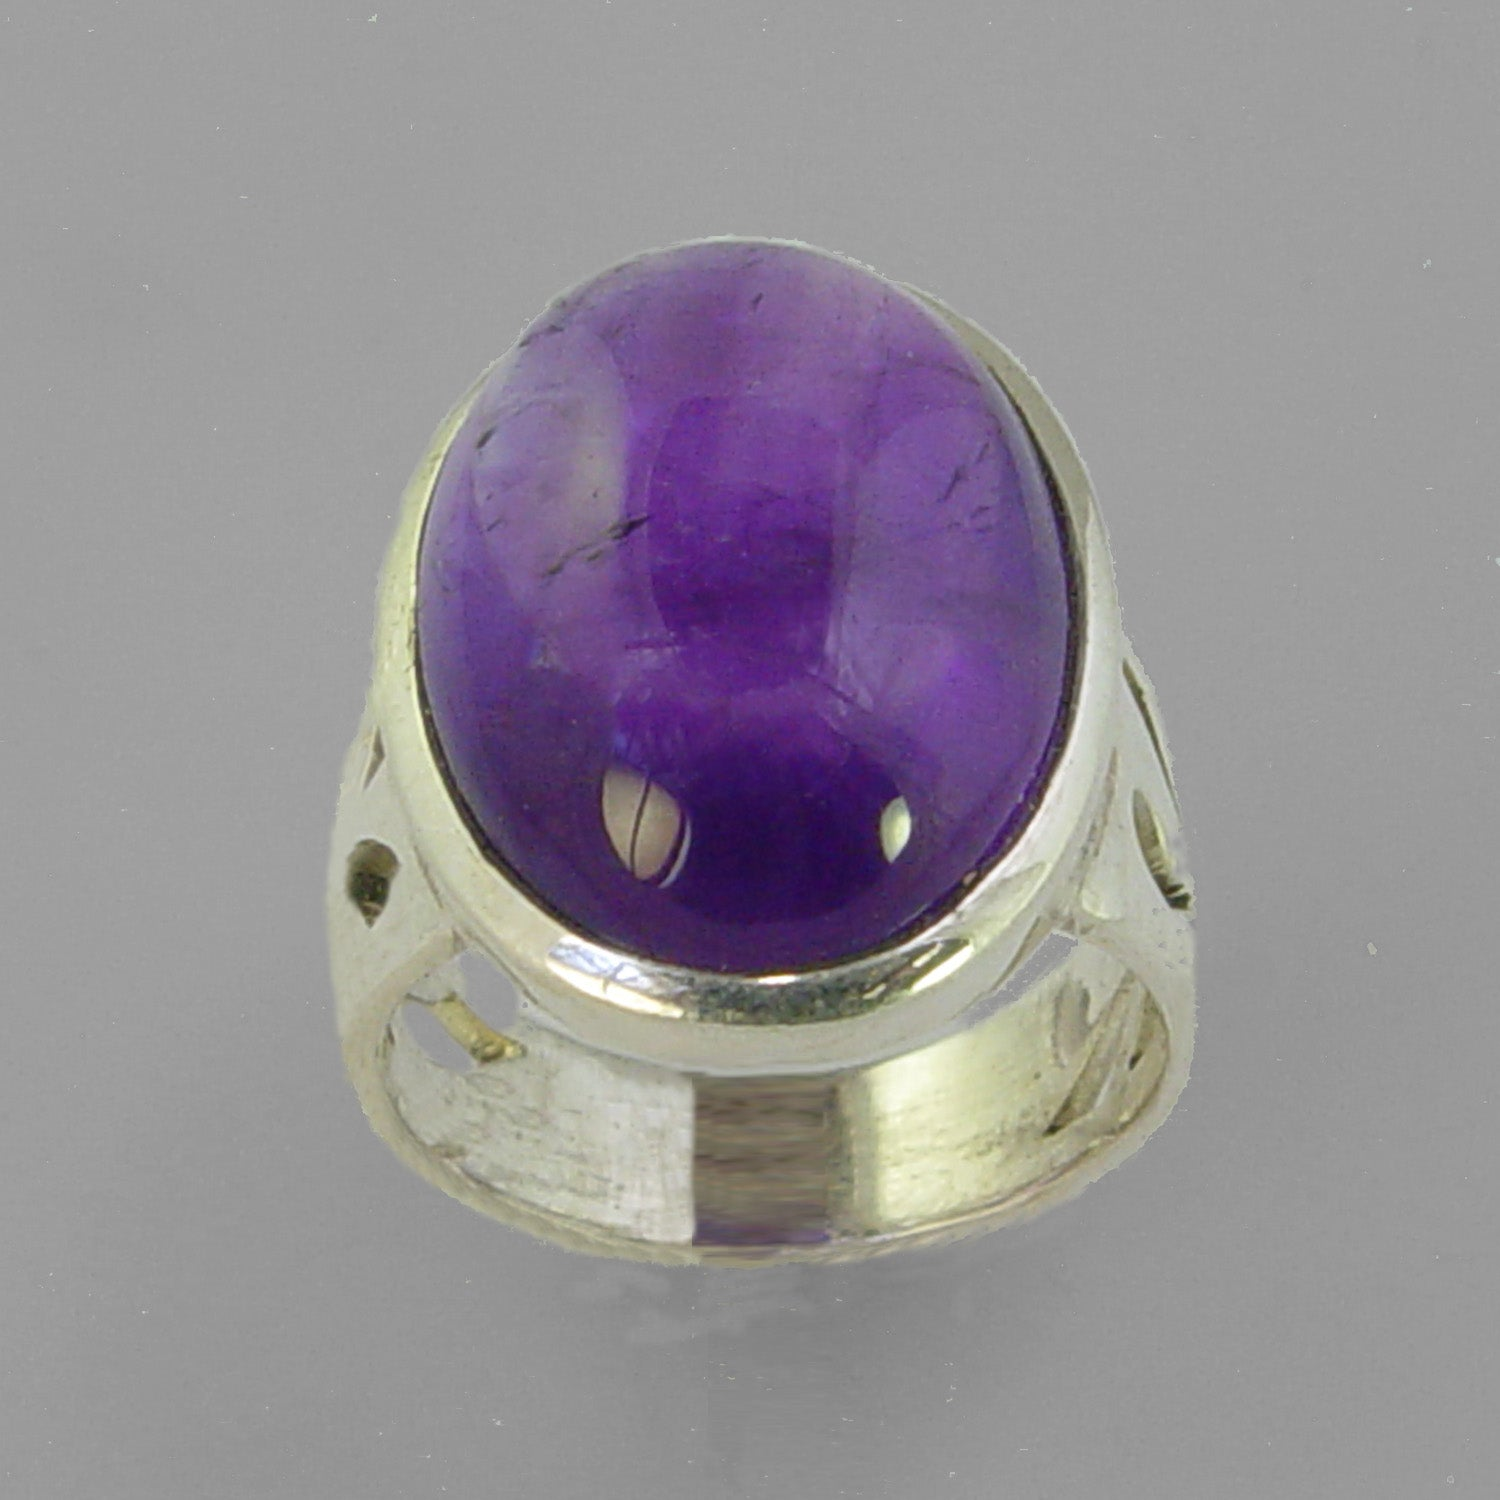 Amethyst 9.1 ct Oval Cab Bezel Set Sterling Silver Ring, Size 5.5